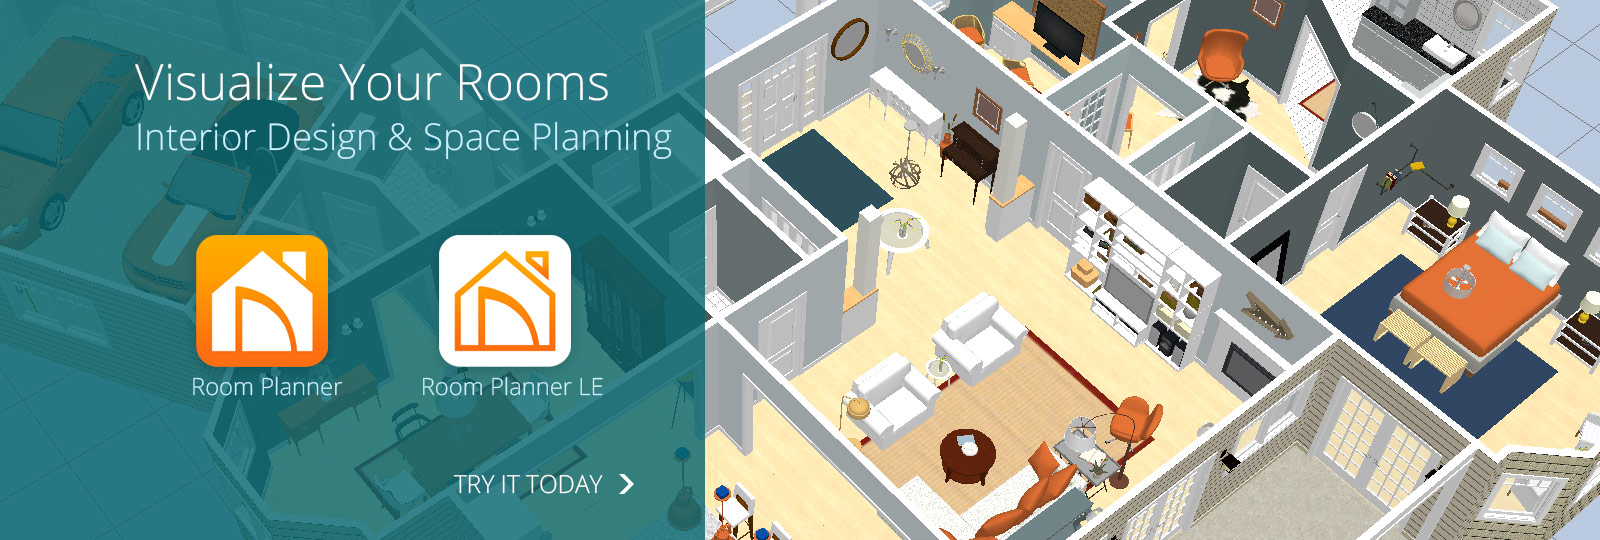 visualize your rooms - Design A House App